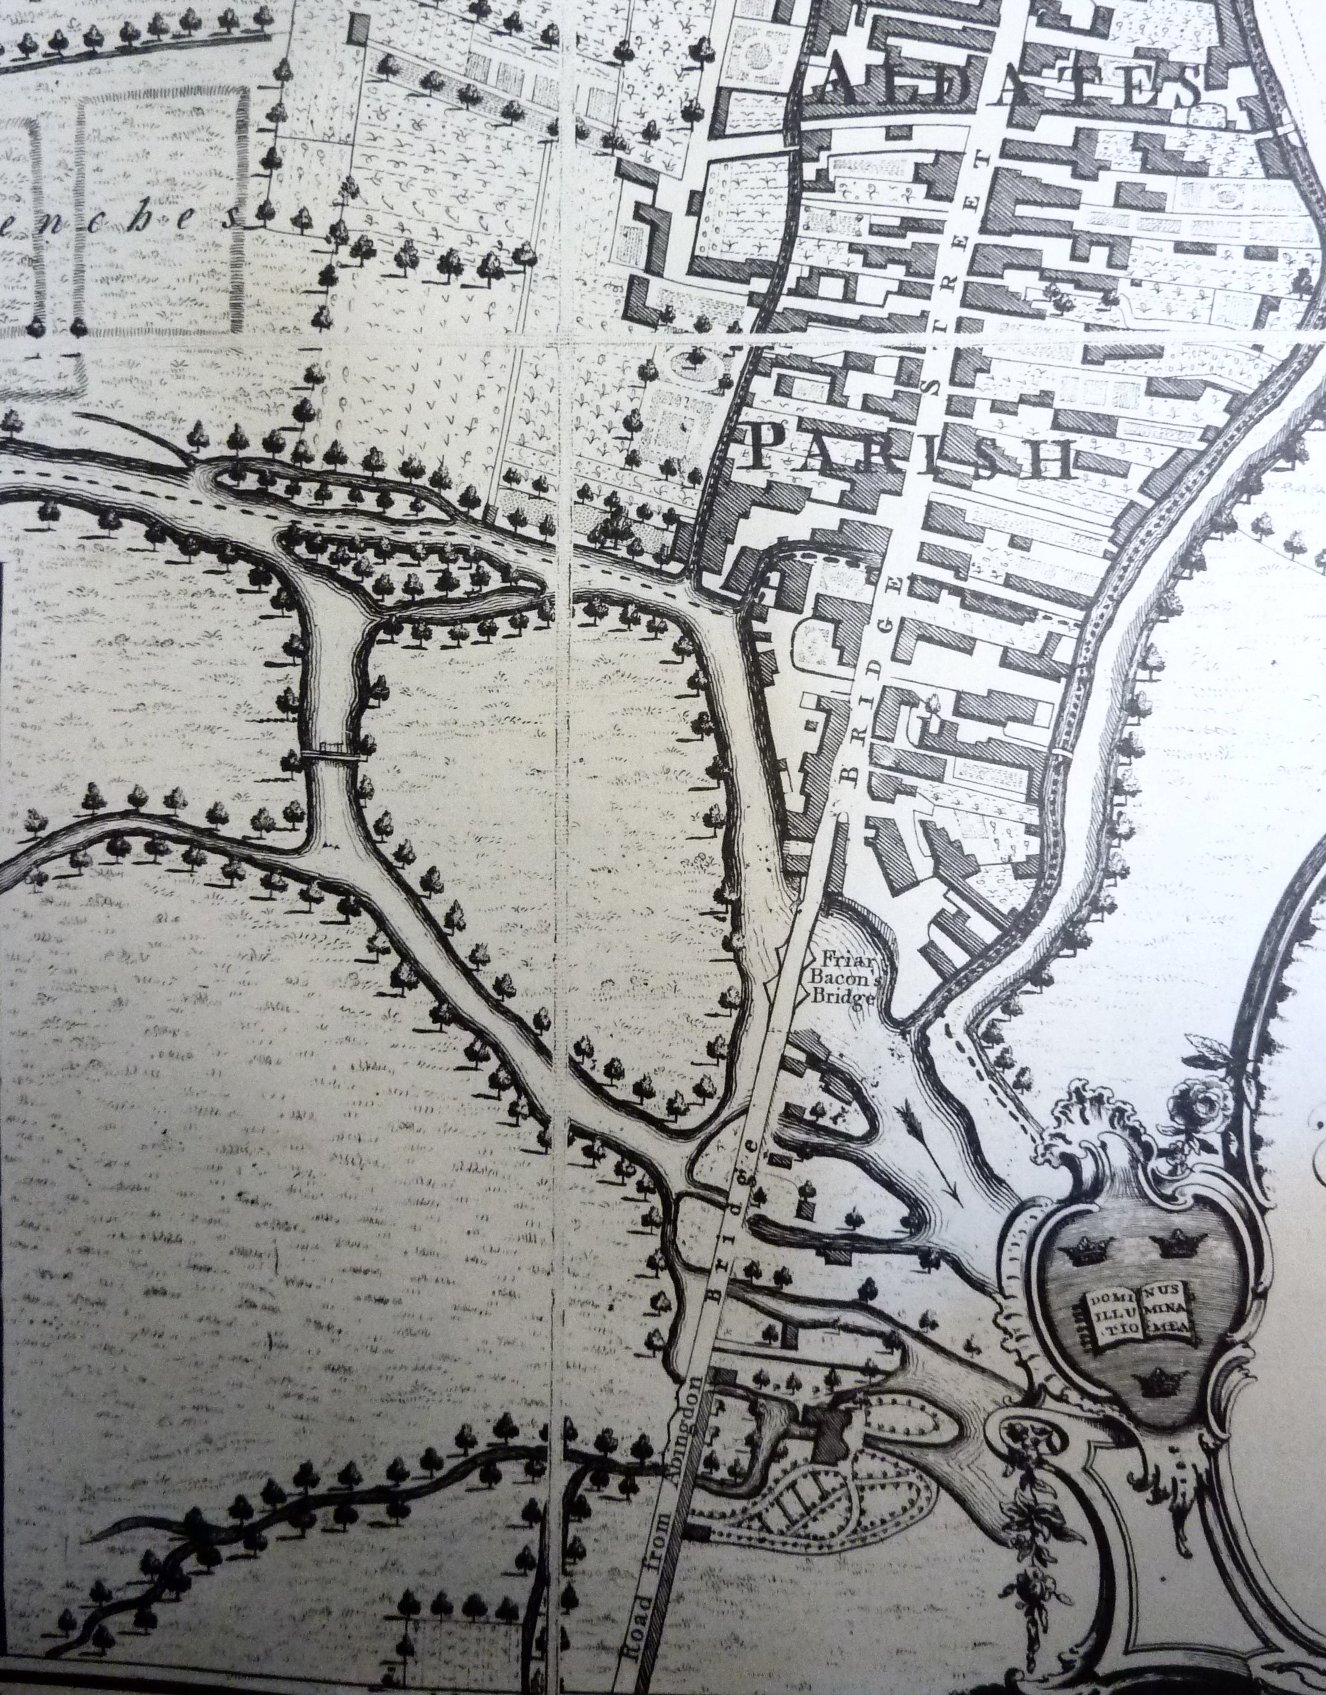 [Folly Bridge & St Aldates, Taylors Map of 1750 updated by Faden 1789]